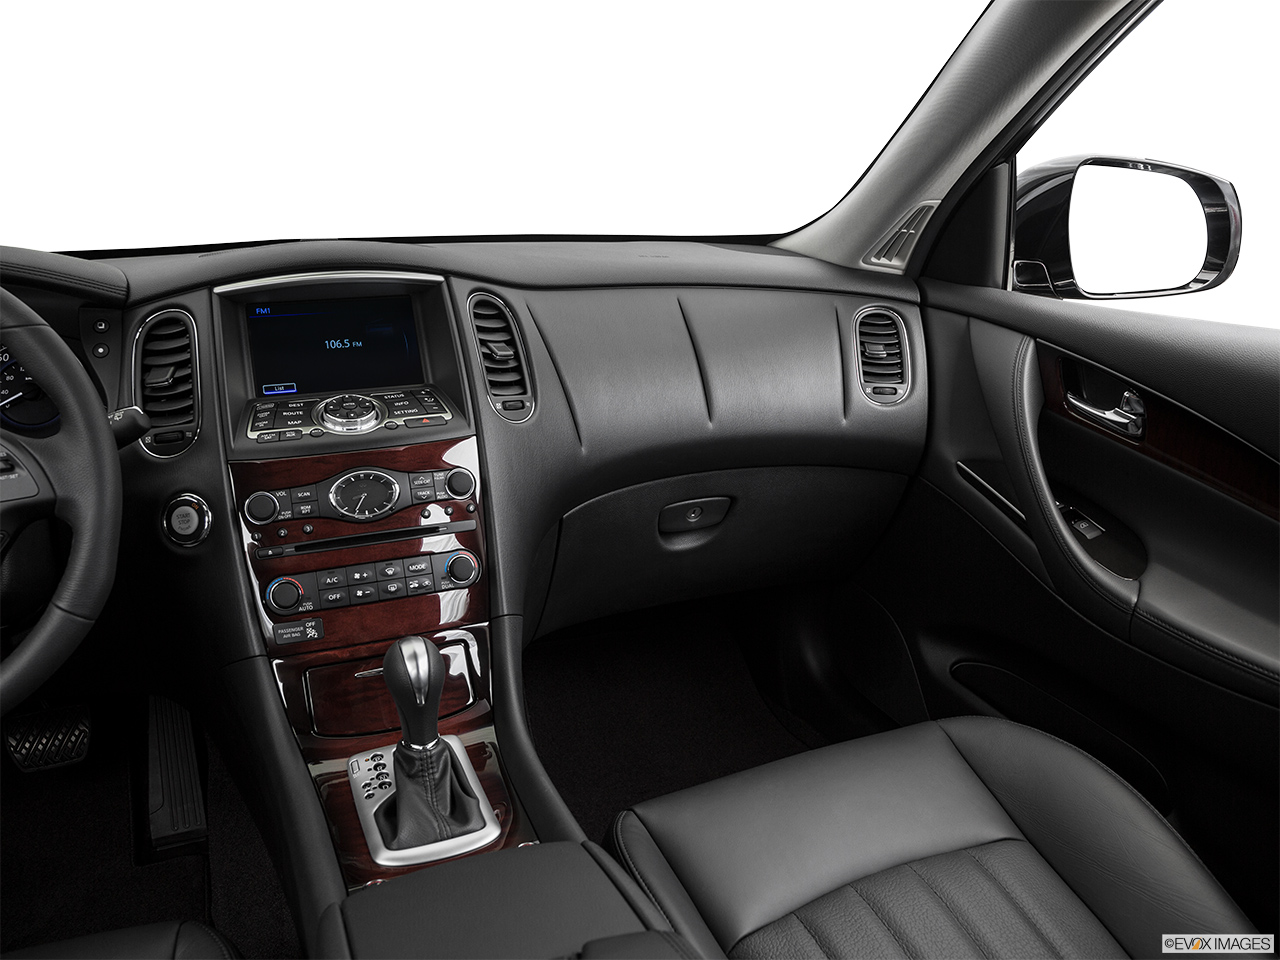 7 New Luxury Cars Coming Out For 2016: Car Pictures List For Infiniti QX50 2016 3.7L Luxury